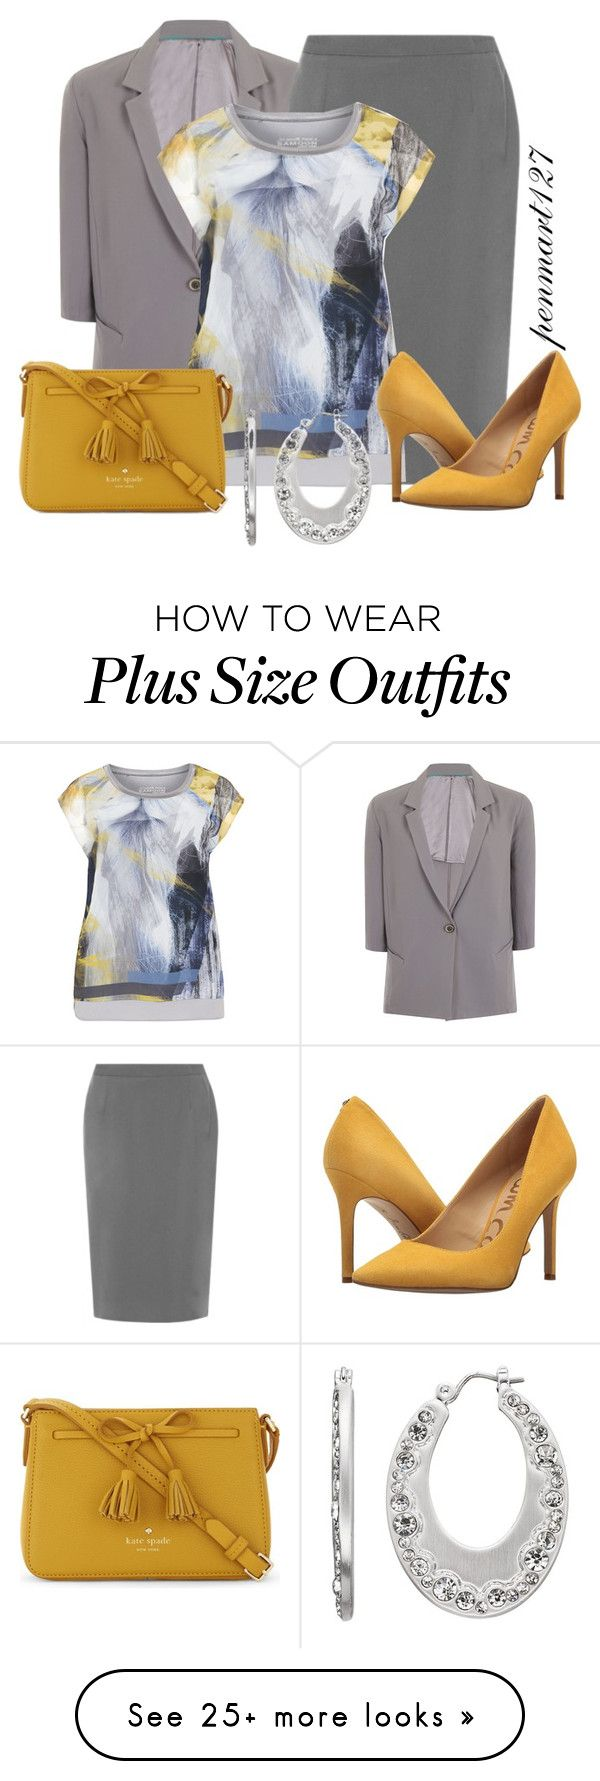 """""""Come Together Right Now #Plussize"""" by penny-martin on Polyvore featuring Elvi, Samoon, Sam Edelman, Kate Spade and Dana Buchman"""